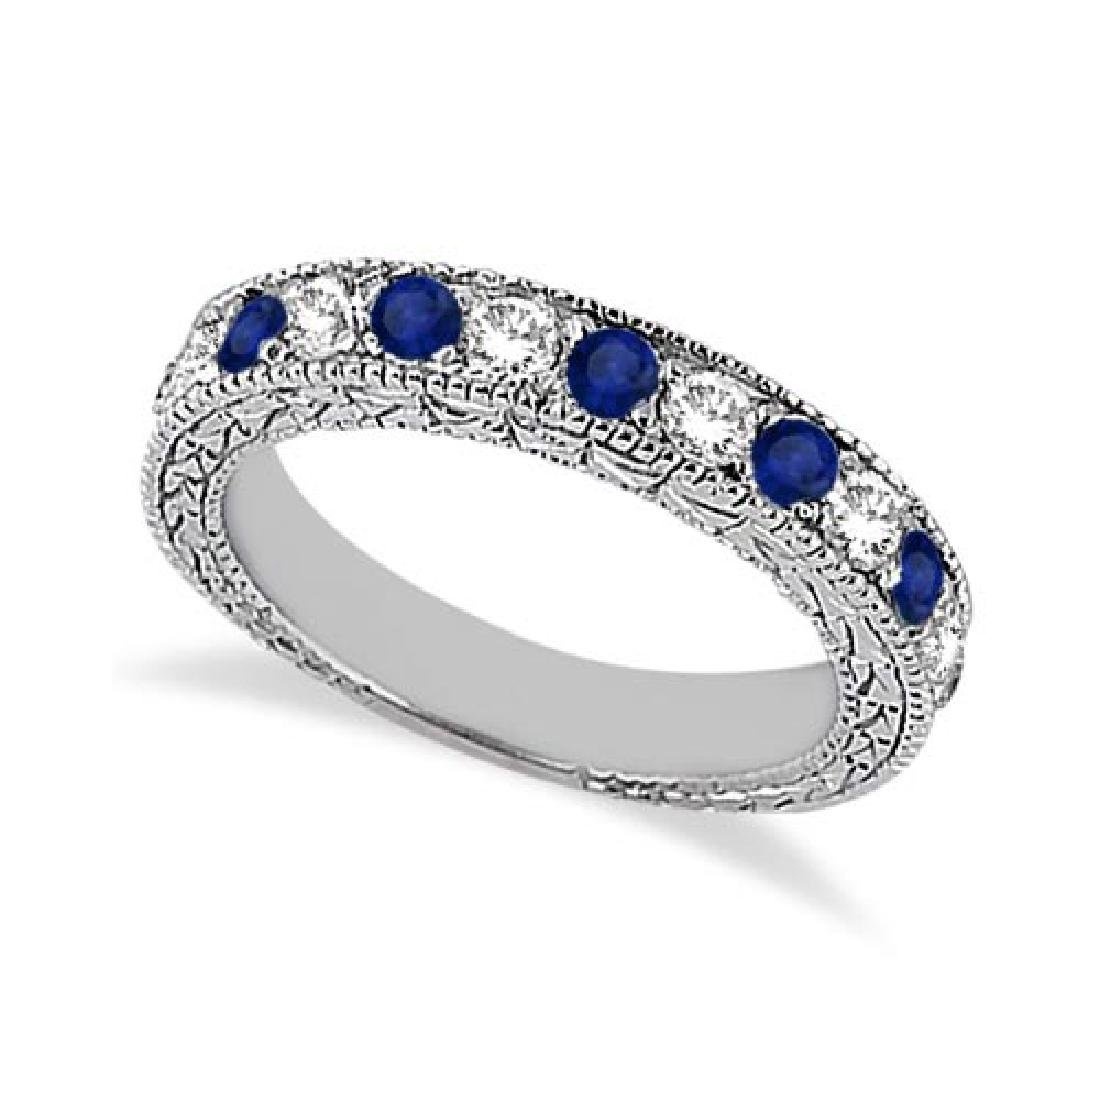 Antique Diamond and Blue Sapphire Wedding Ring Platinum